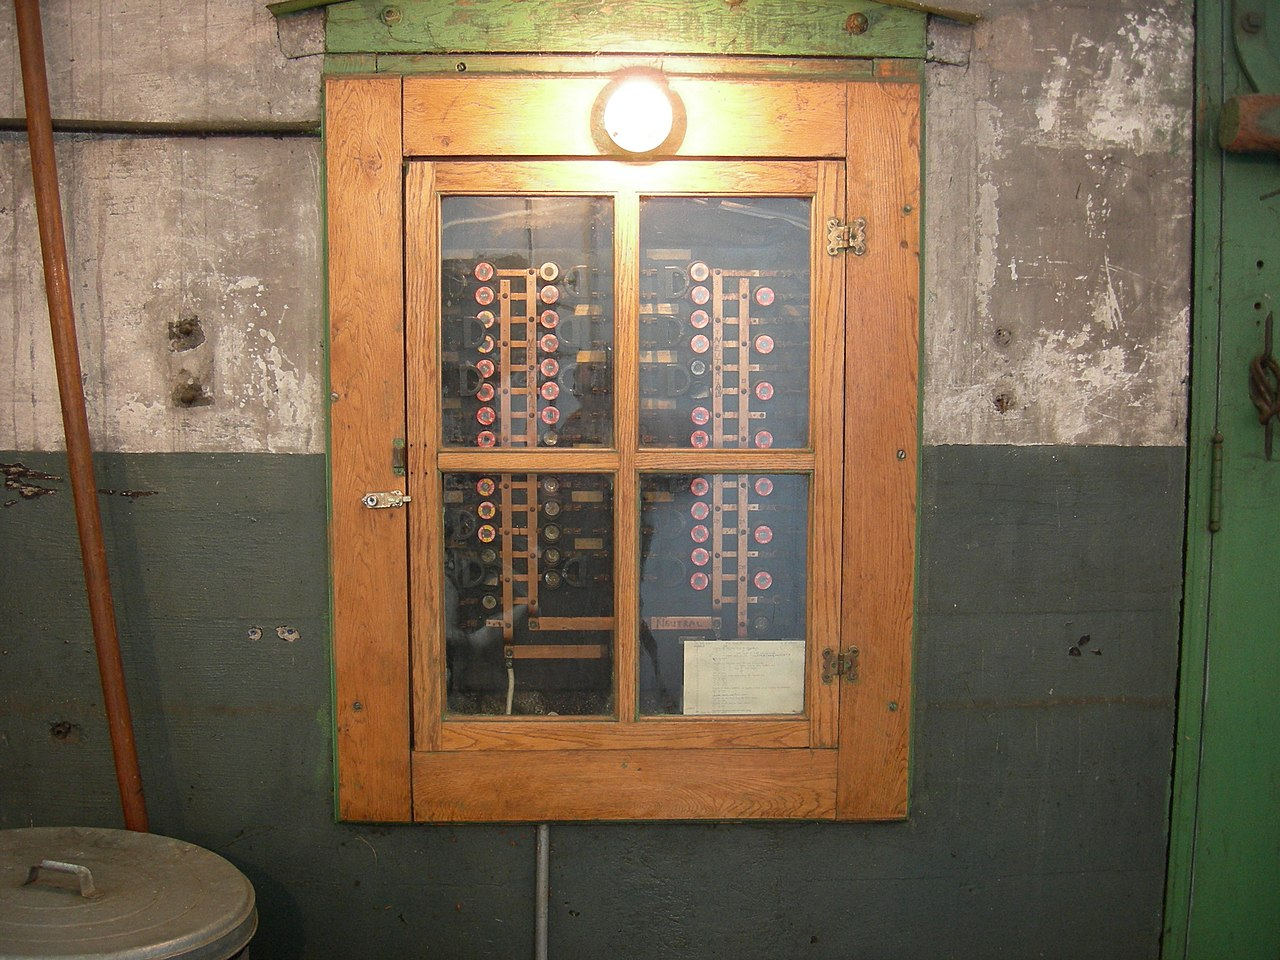 file georgetown powerplant museum fuse box jpg wikimedia commons rh commons wikimedia org Fuse Box Door Handle Fuse Box School